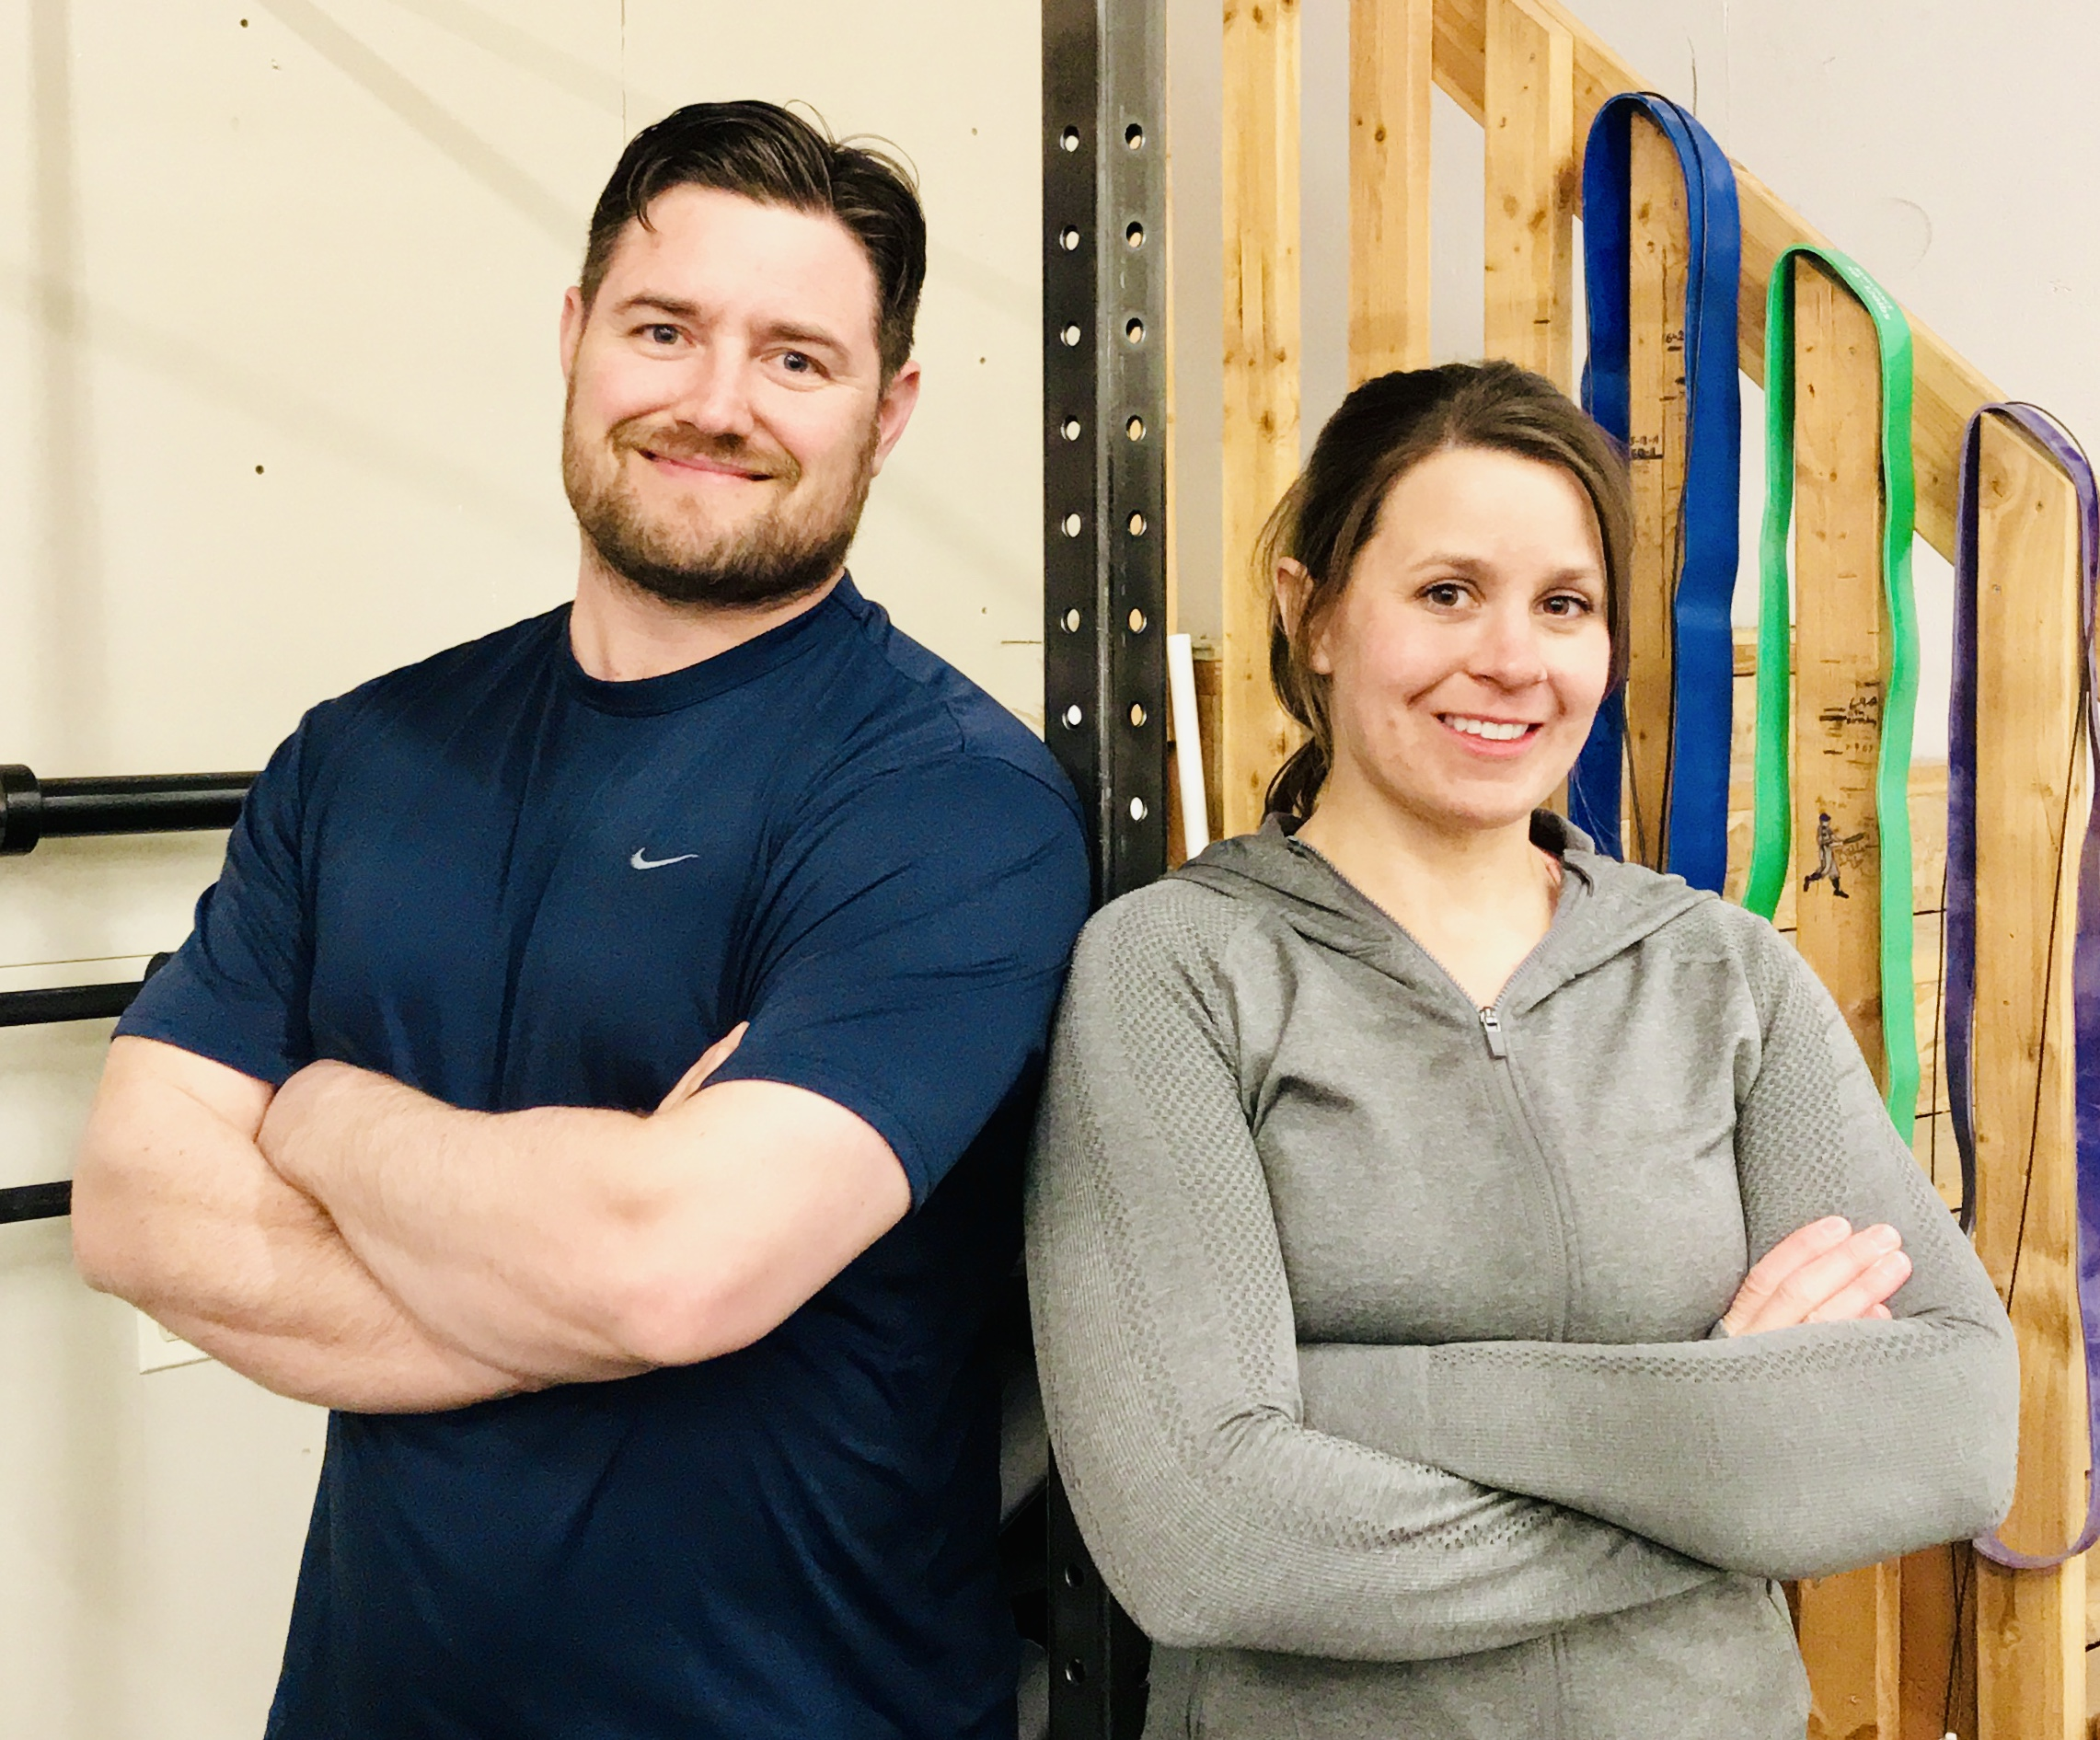 What is CrossFit? (Click for video) - Hello! We are steve and lianna freeman, and we have built a crossfit box out of our pole barn here in davenport, wa.we are here to empower our community with a fun and supportive environment through crossfit's unique programming and methodology. at our gym you will learn solid foundational and functional movements that will improve your strength, stamina, flexibility, coordination, balance, and overall health. we are here to help you with your journey and support you from wherever you're starting.